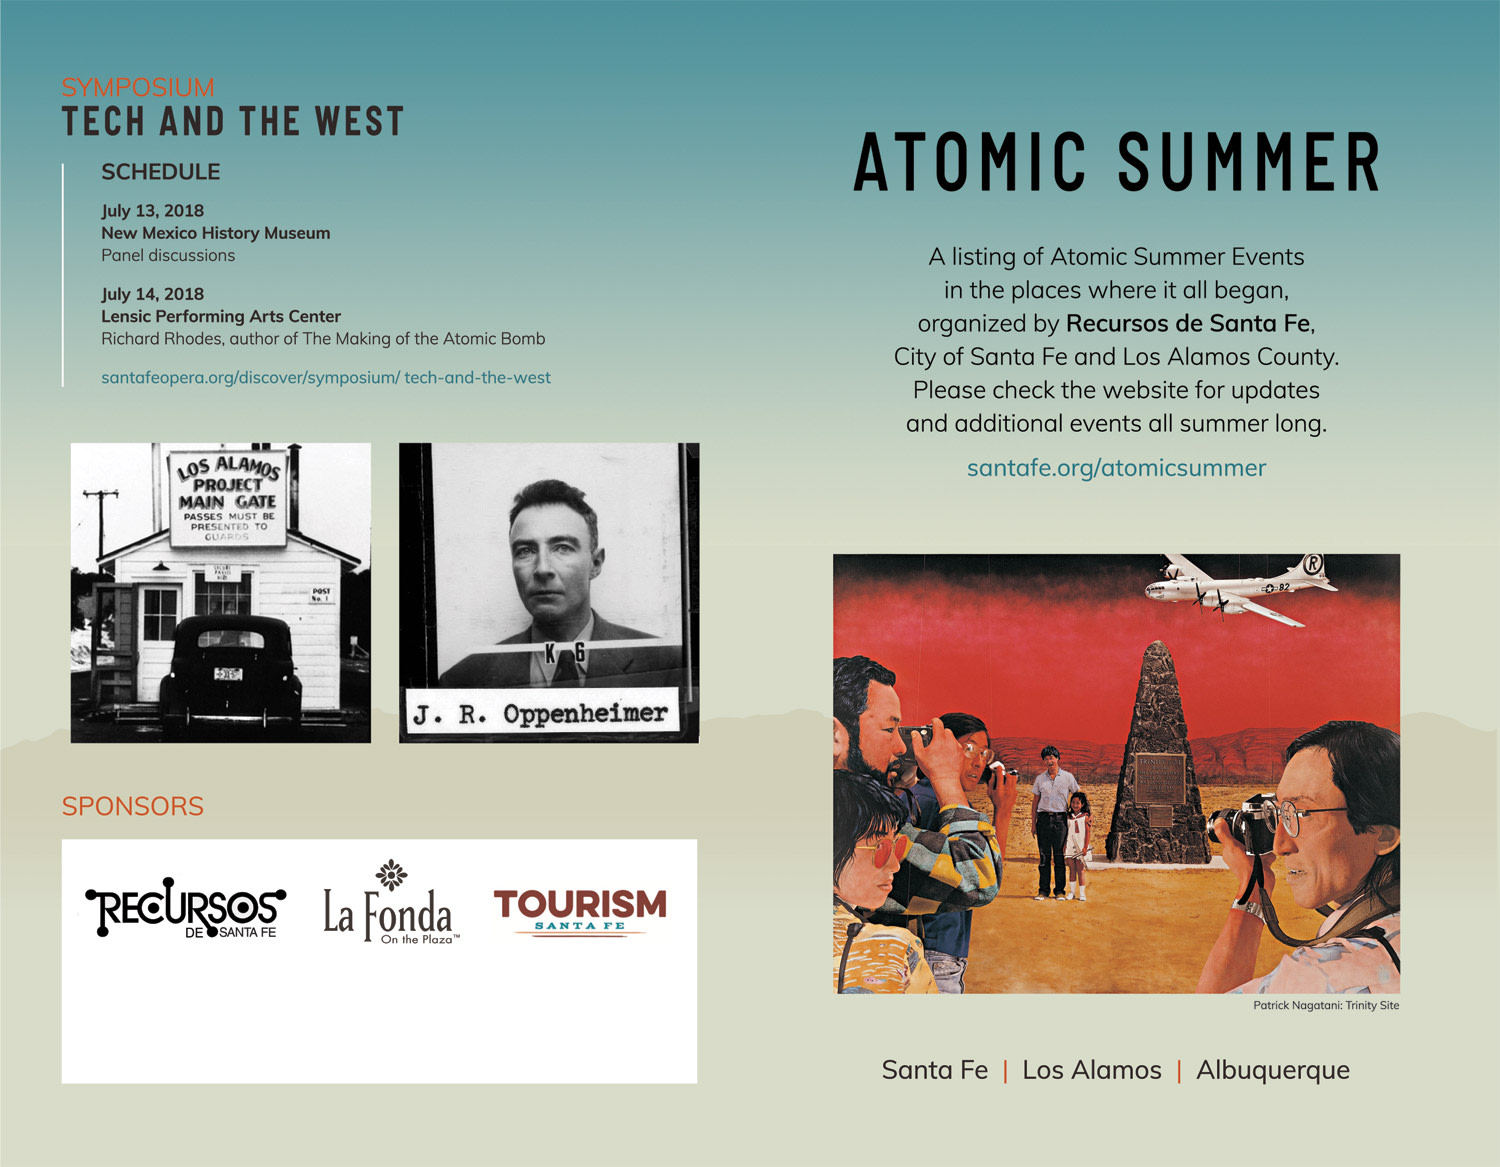 Atomic Summer web page and printed brochure